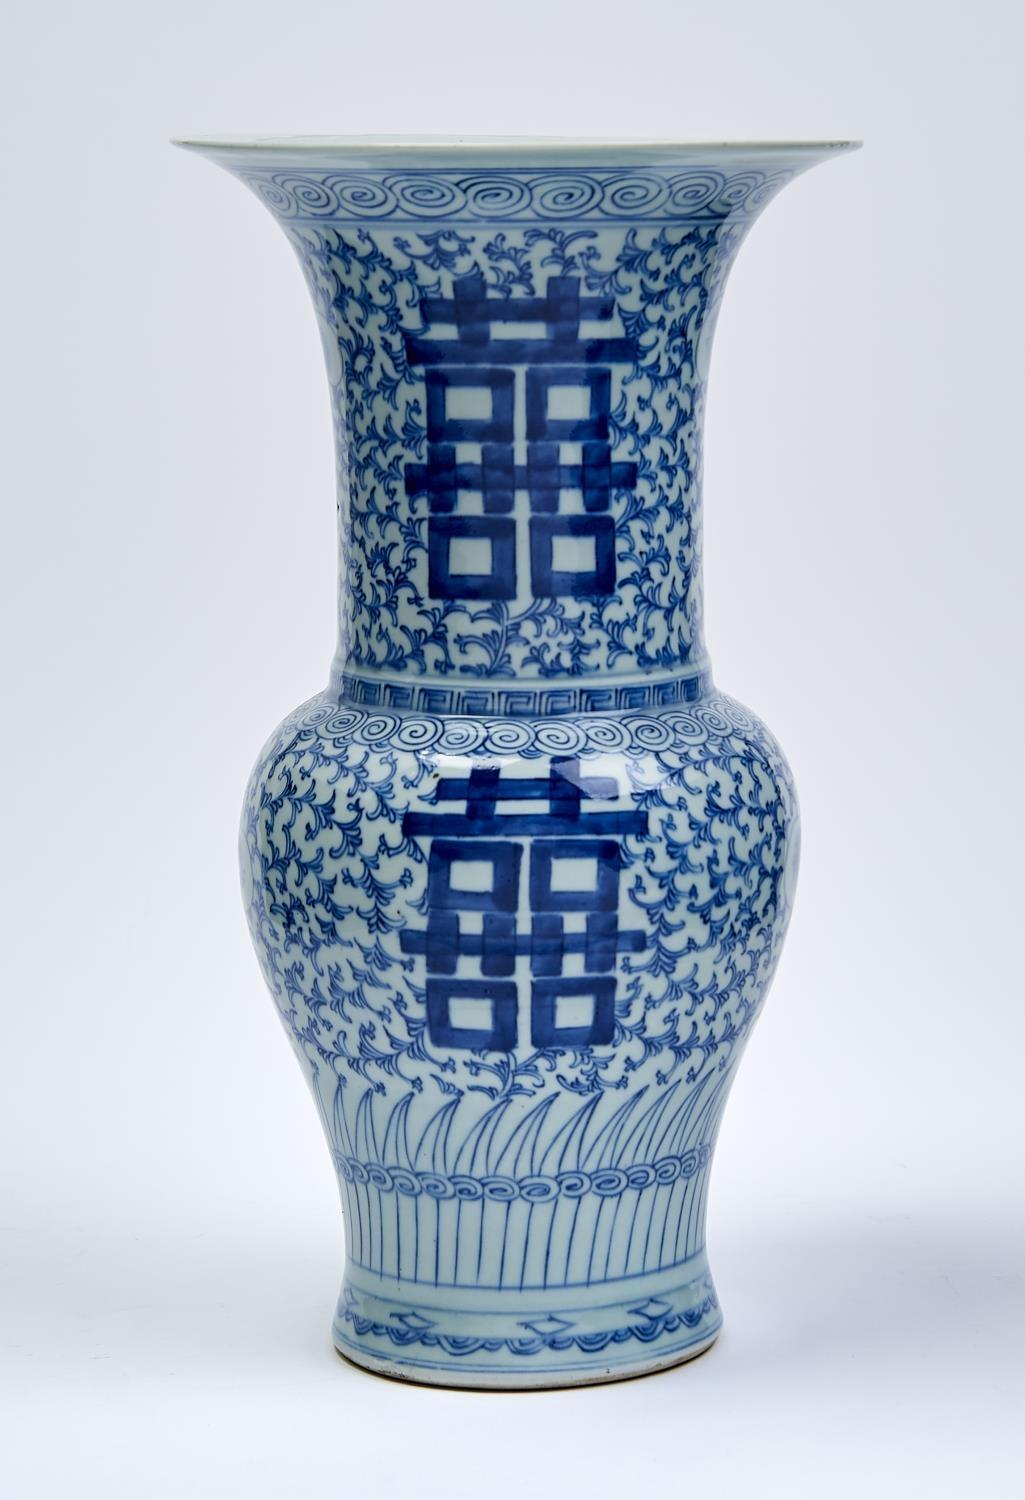 A CHINESE BLUE AND WHITE YEN-YEN VASE, 19TH C, PAINTED IN TWO REGISTERS WITH SHOU CHARACTERS,